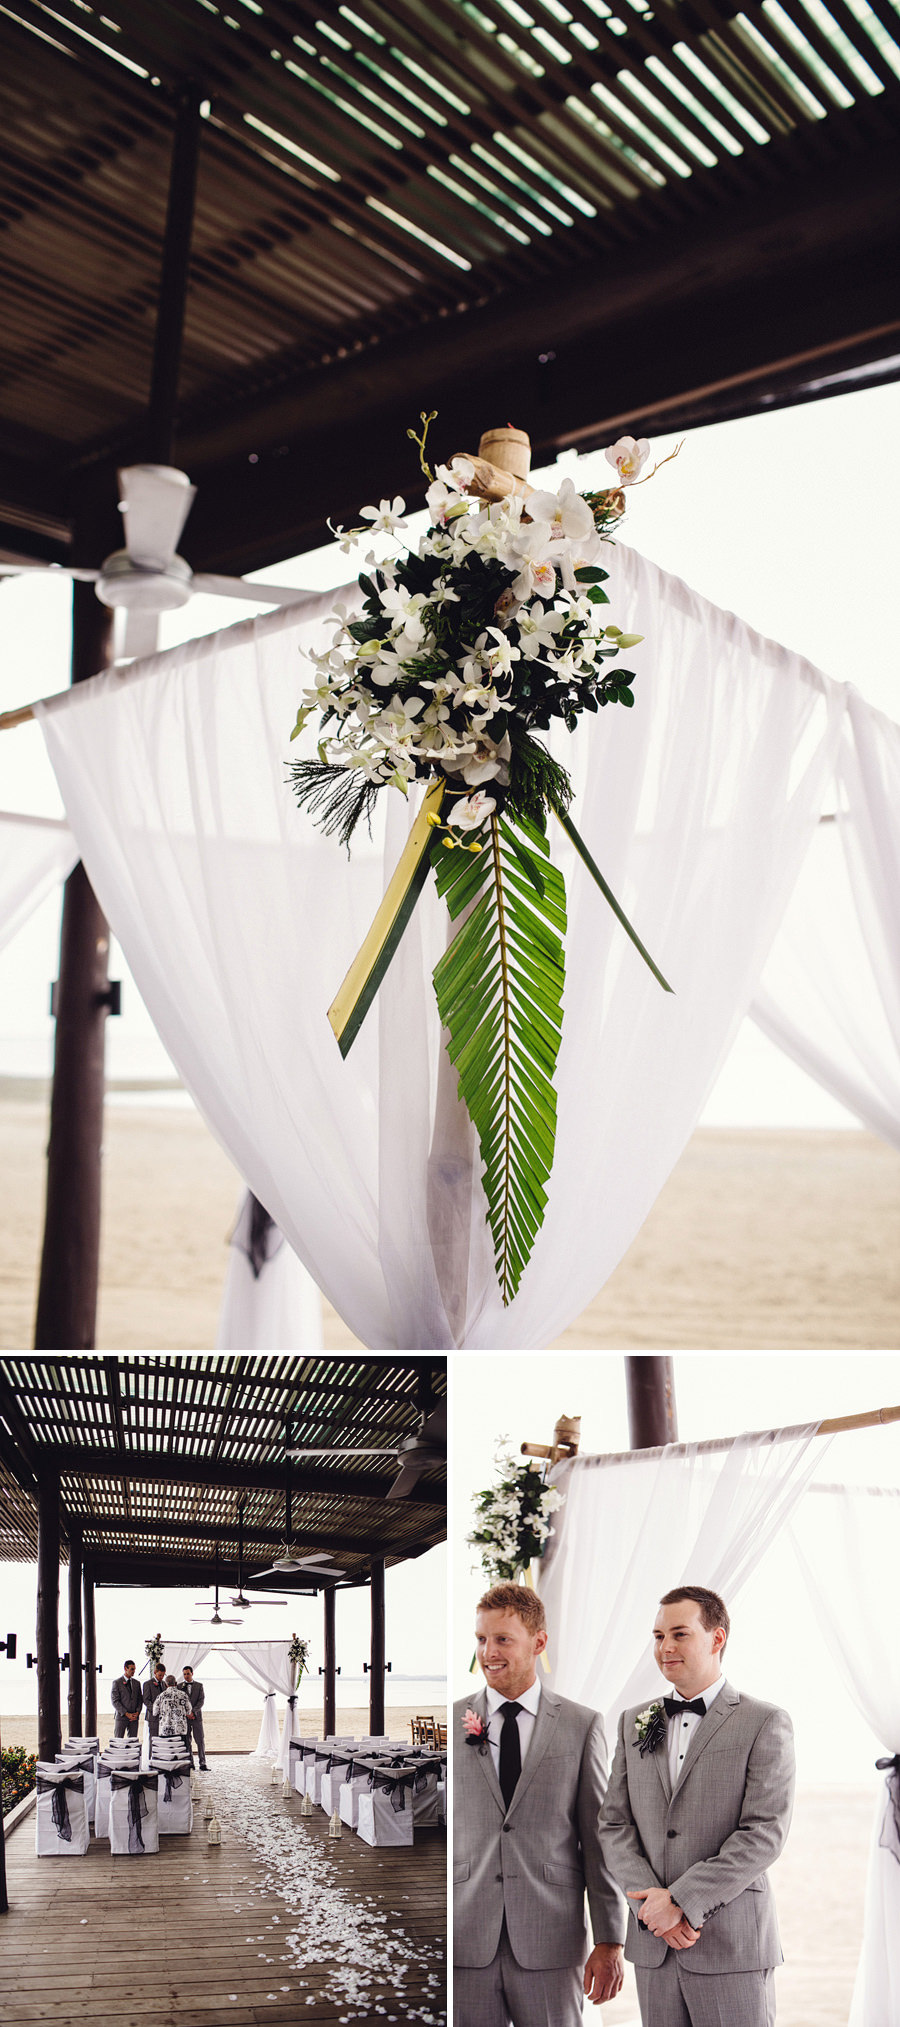 Hilton Fiji Beach Resort and Spa Wedding Photographers: Ceremony details